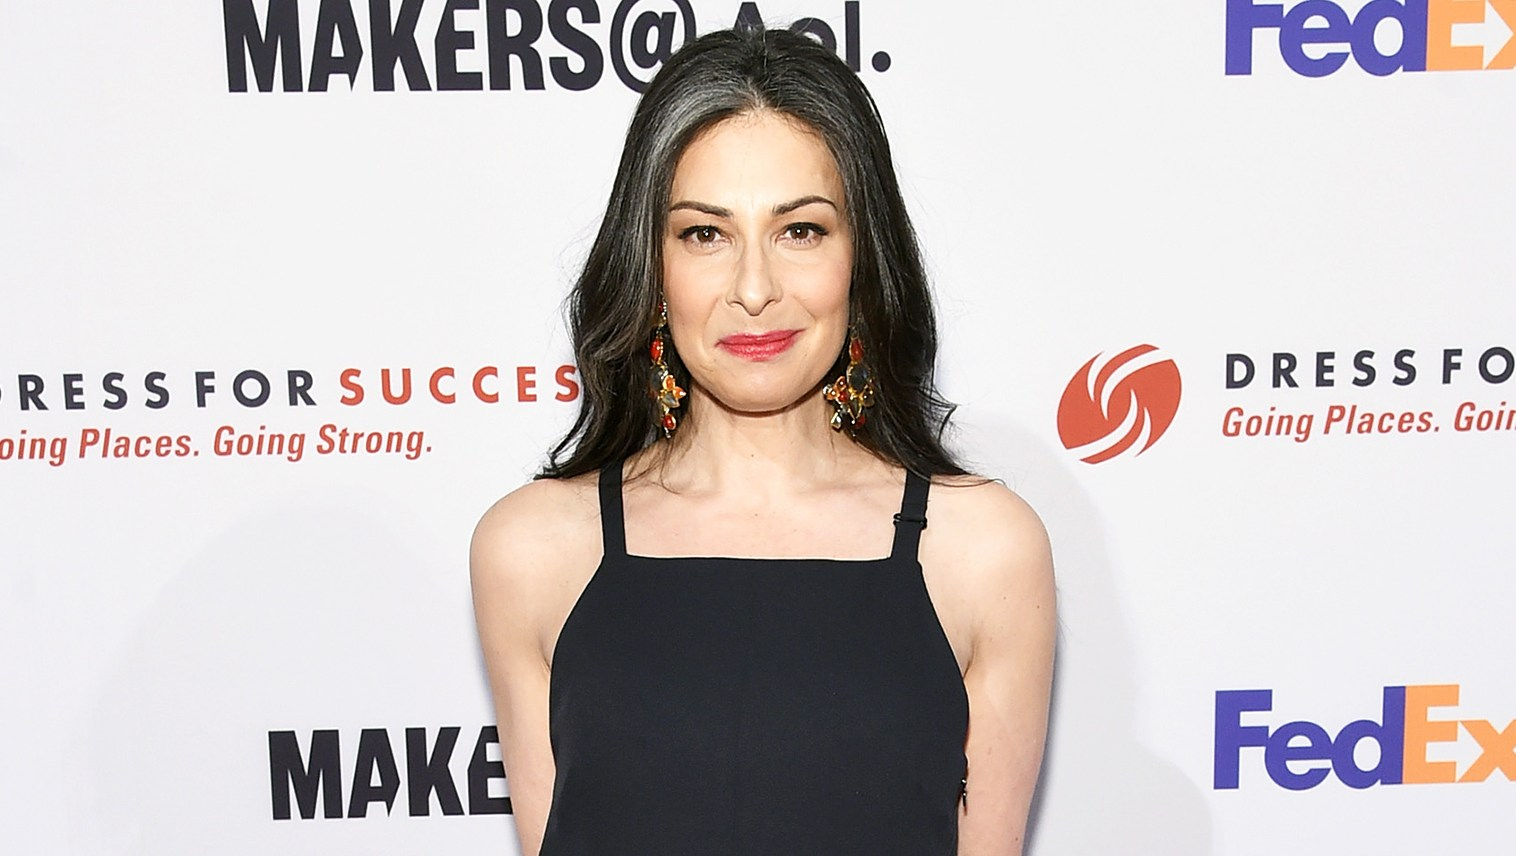 Stacy London Unblocks Social Media